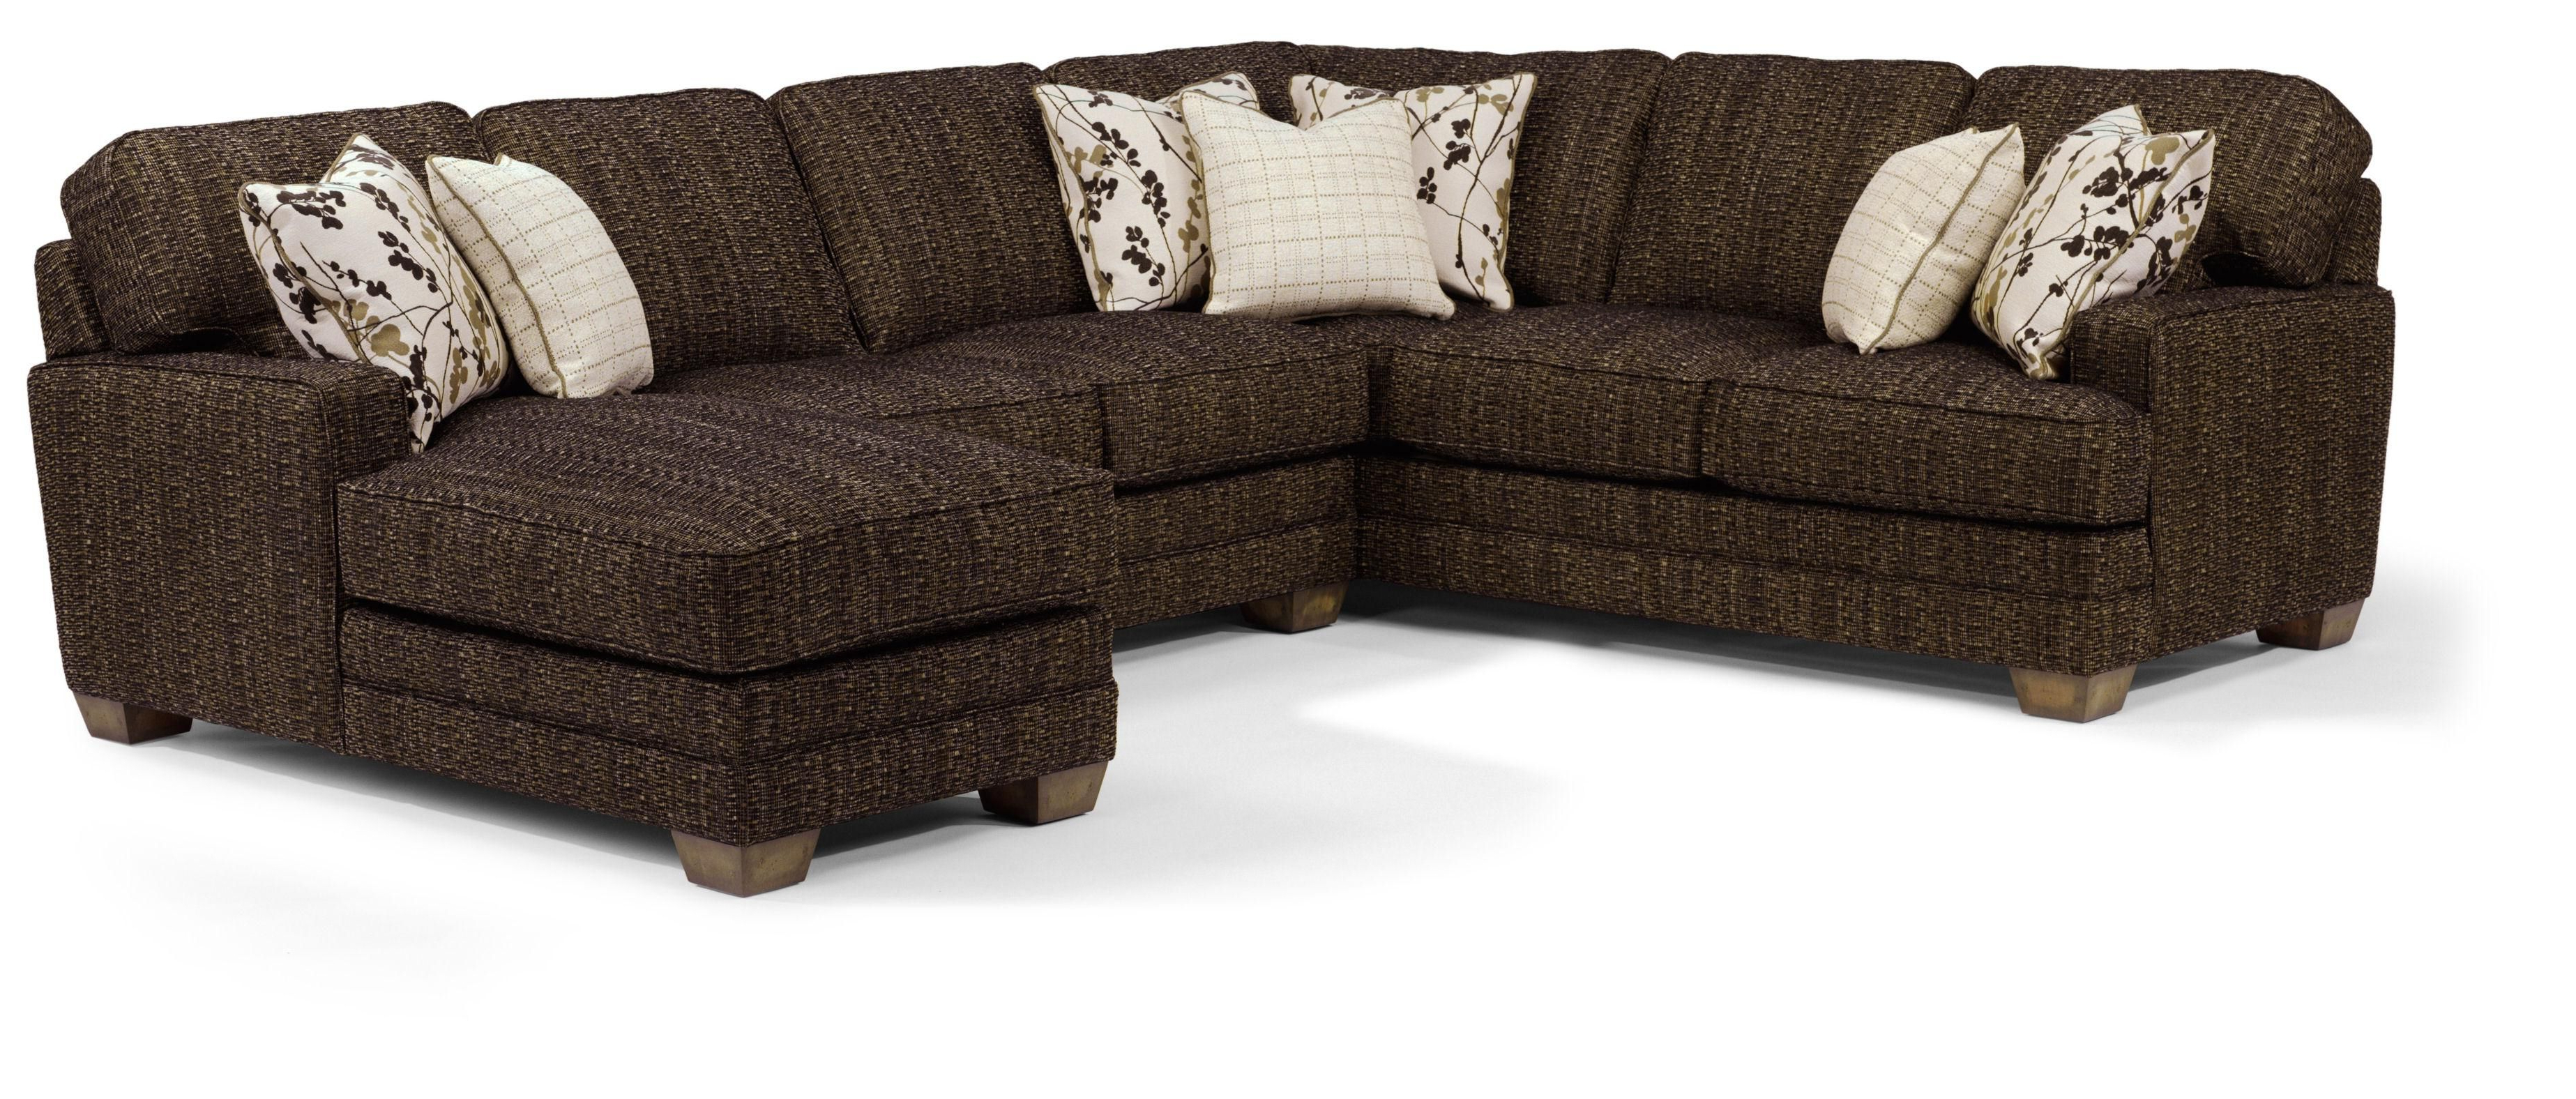 Leather Sectionals (View 17 of 20)